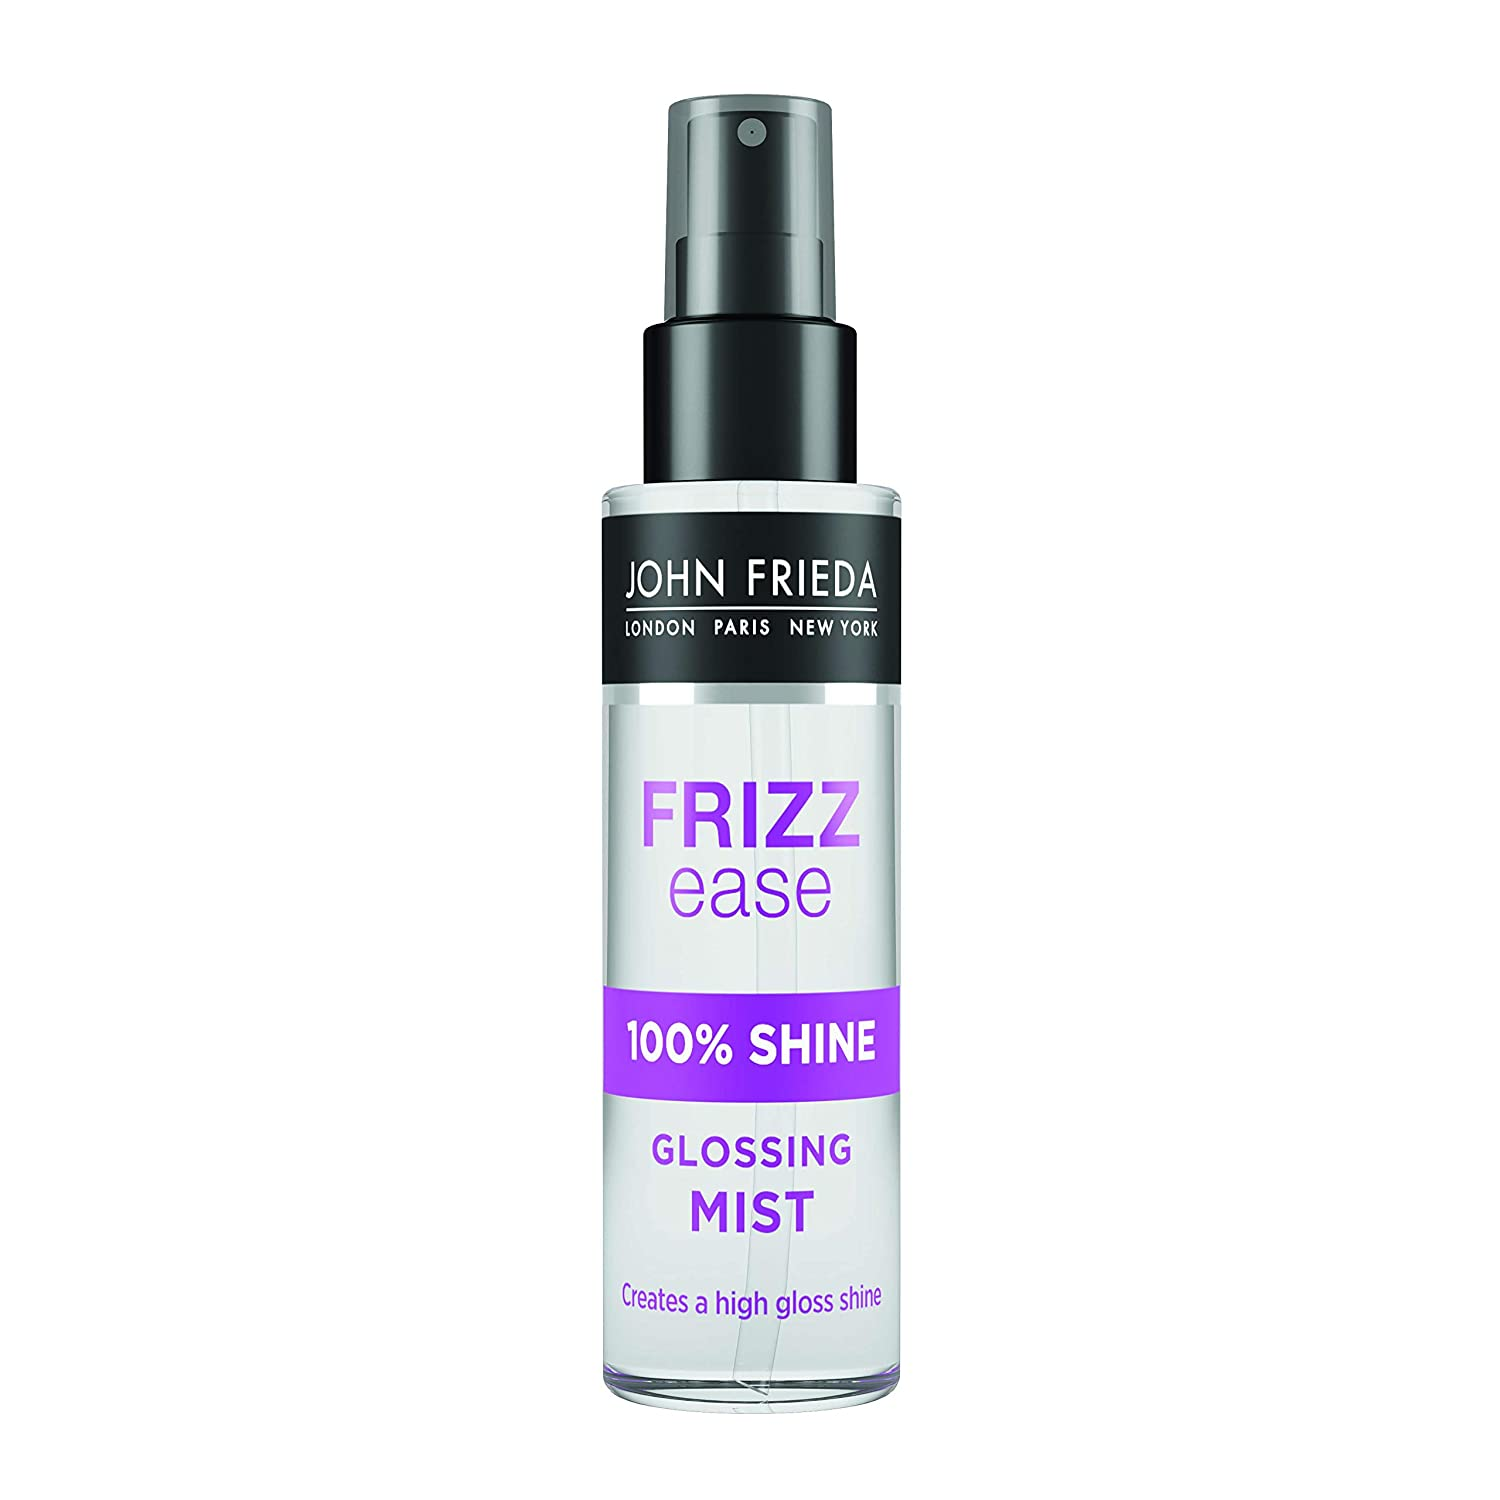 John Frieda Frizz Ease 100% Shine Glossing Mist Finishing Spray 75ml 1192003